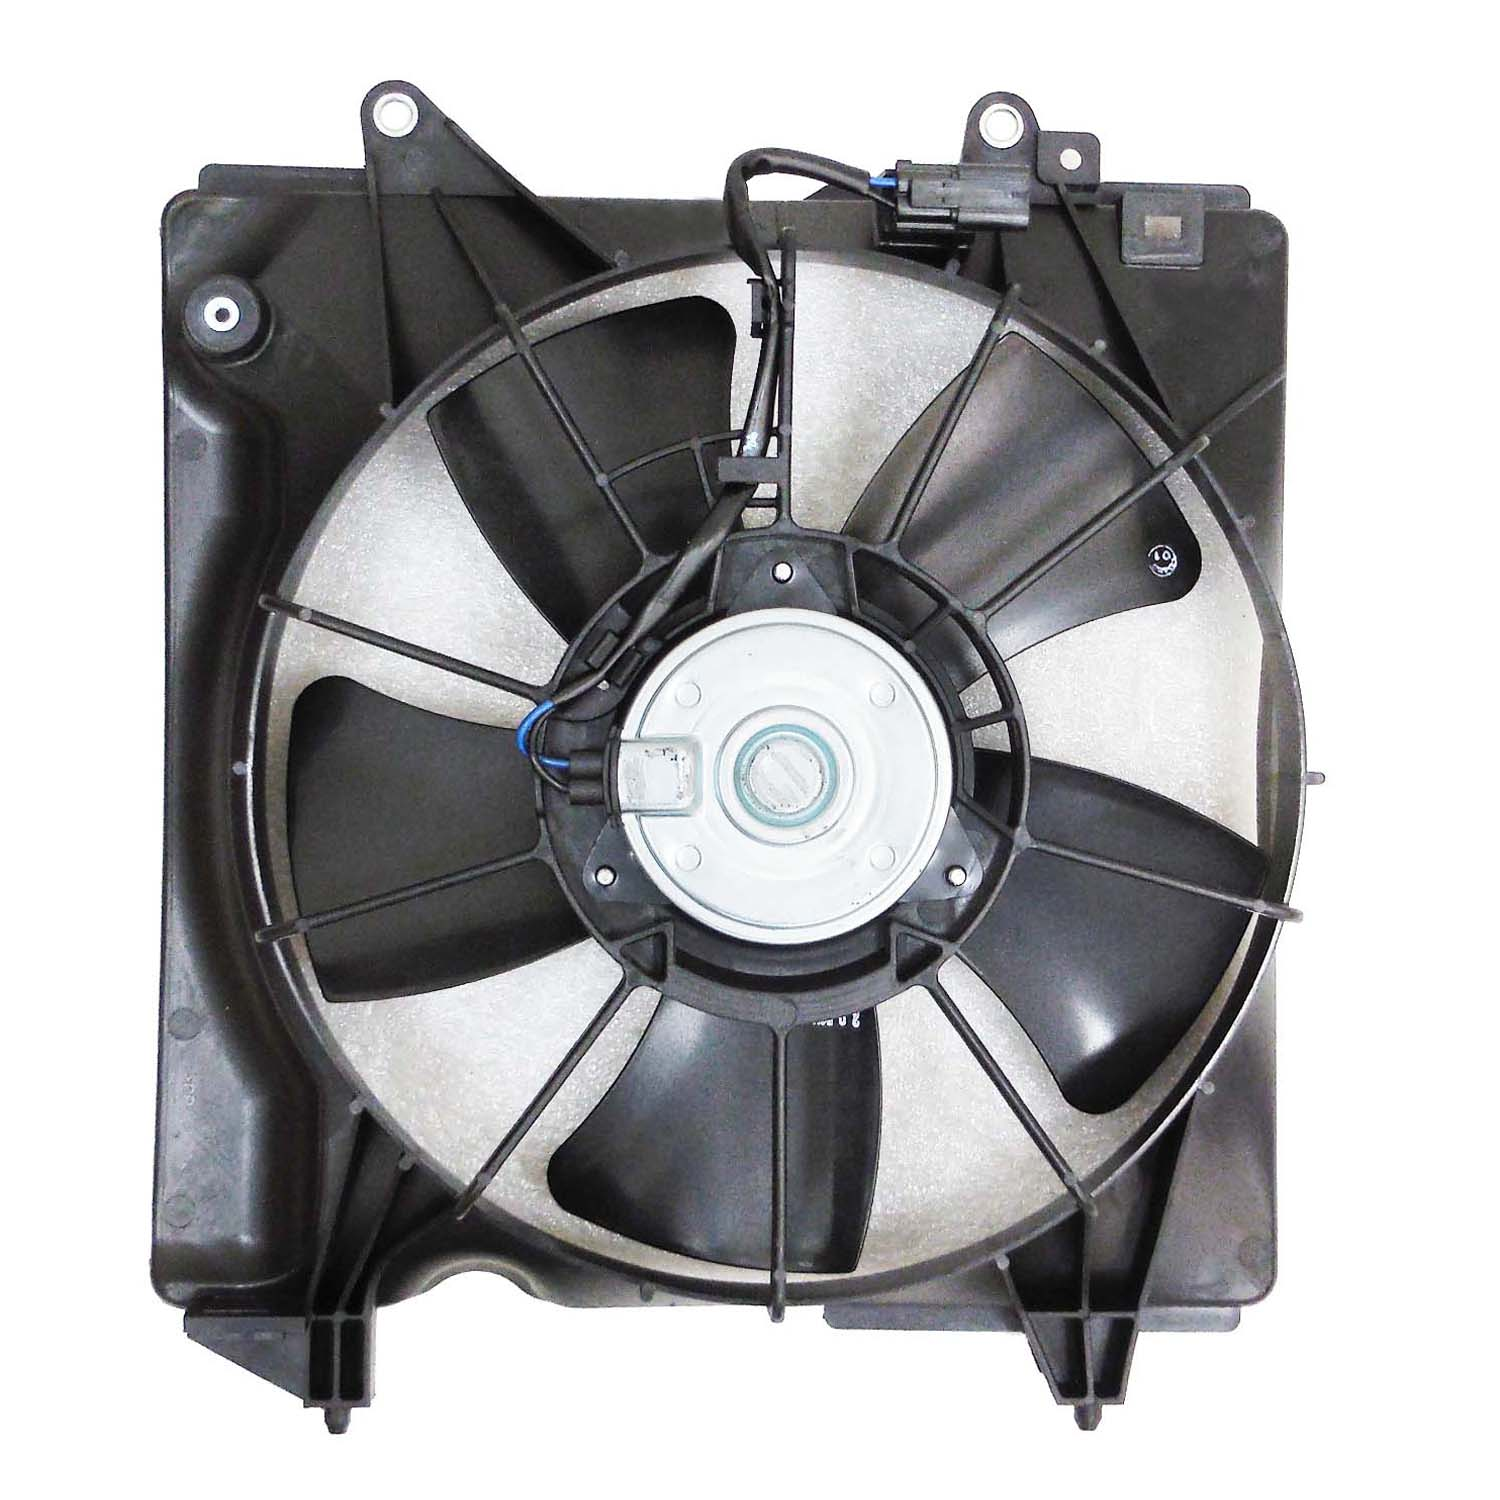 CPP Replacement Engine Cooling Fan Assembly HO3113139 for 2016 Honda HR-V